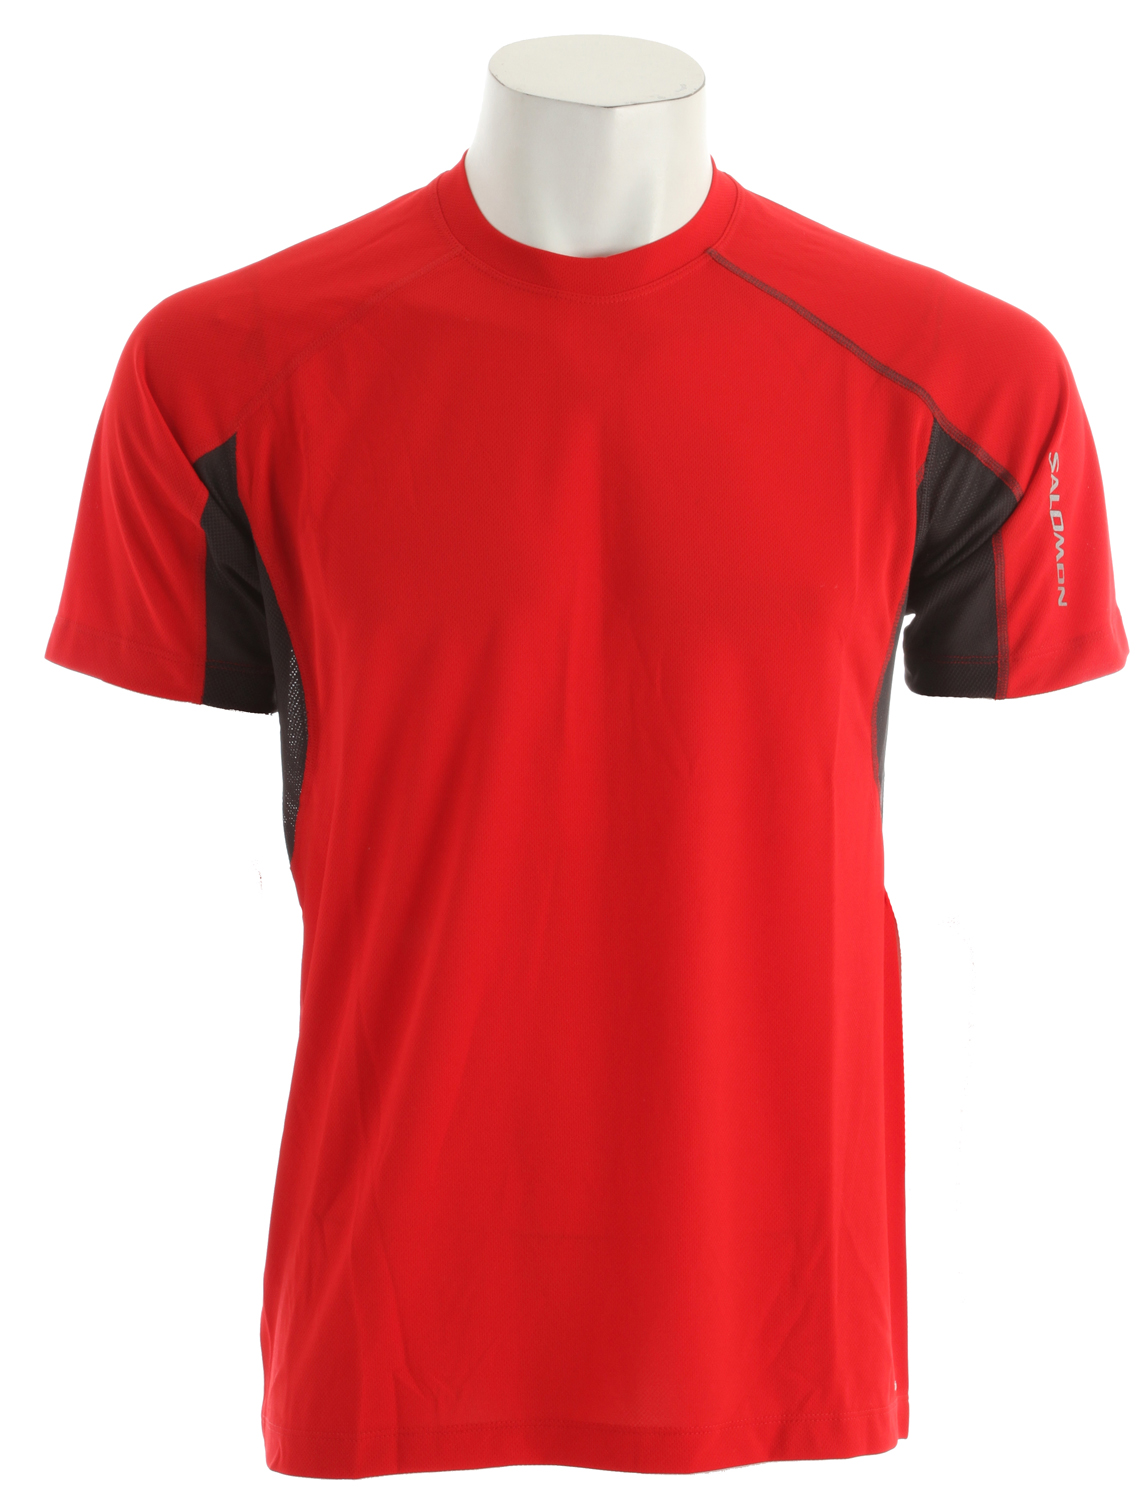 Fitness Relaxed fitting, versatile tee for running and outdoor sports with mesh pit vent panels, updated seam detailing and stash pocket.Key Features of the Salomon Trail IV T-Shirt: Flatlock Seams Stash Pocket Reflective Branding Front & Back actiLITE Poly Mock Eyelet actiLITE Stretch Mesh Relax Fit - $19.95